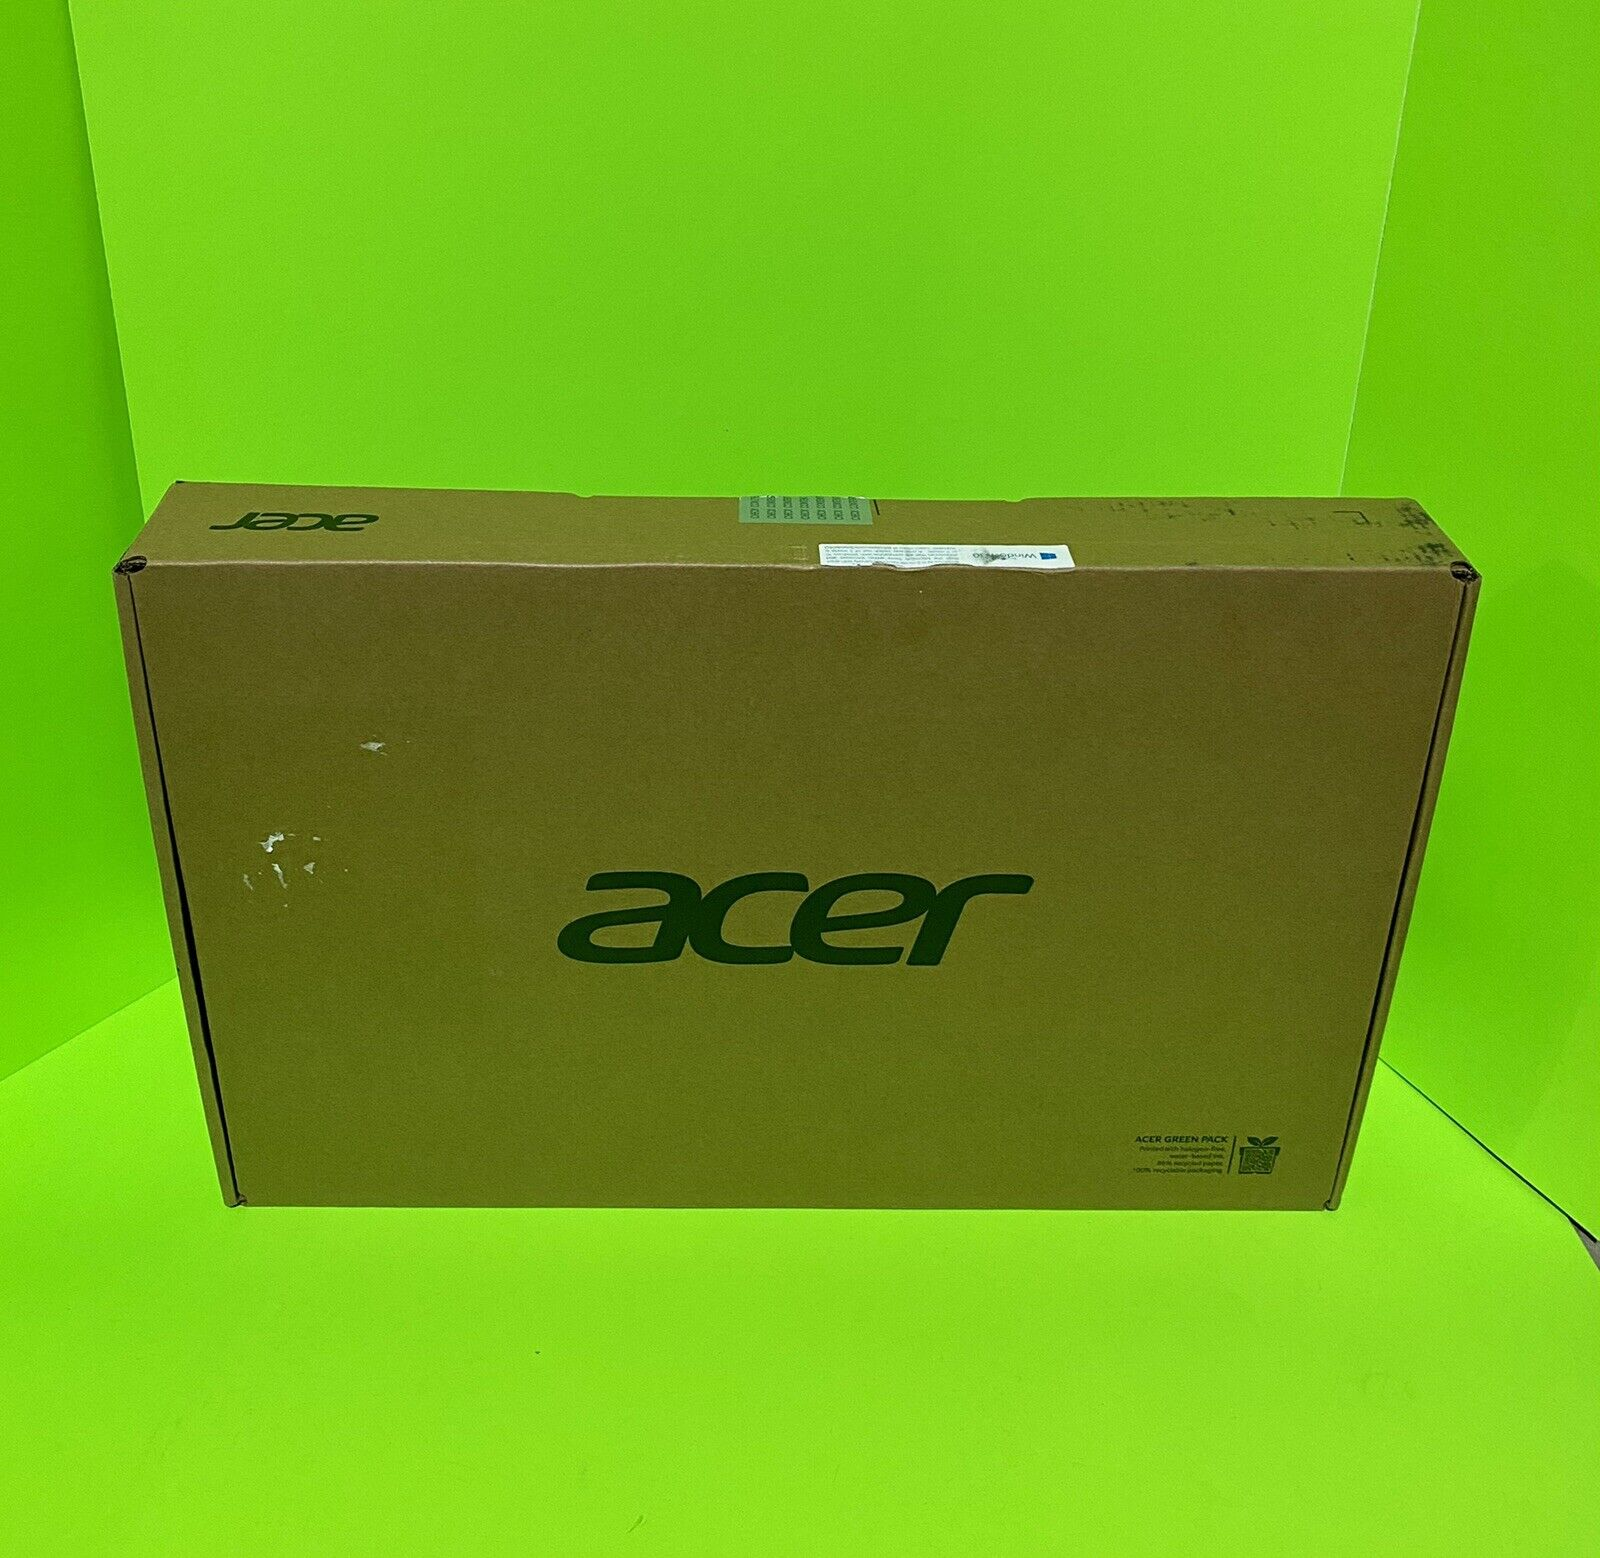 "NEW Acer Aspire 5 Slim Laptop 15.6"" FHD IPS Ryzen 3200U 4GB 128GB A515-43-R19L"